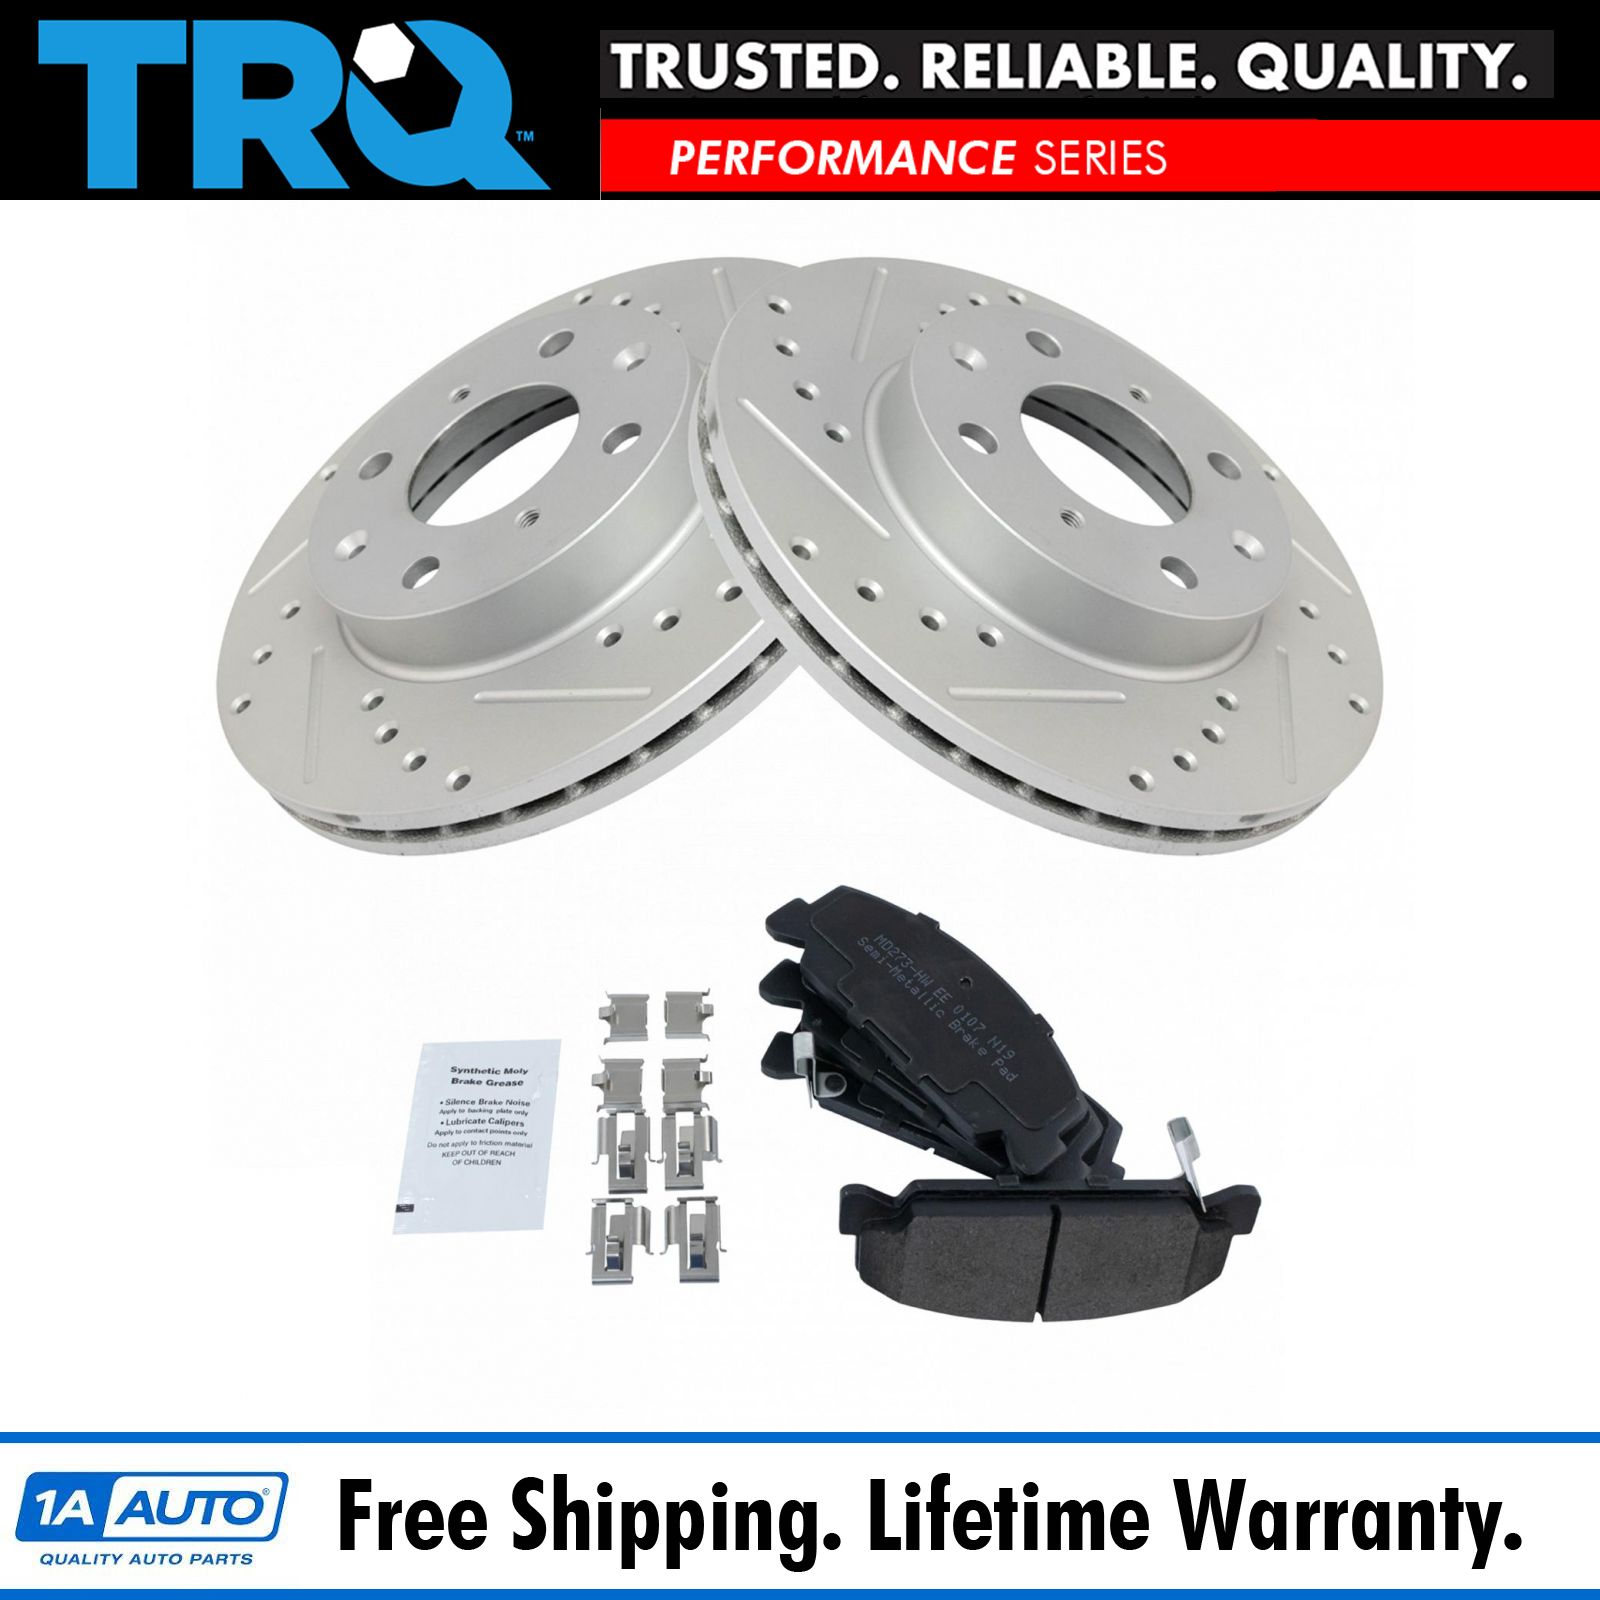 Nakamoto Performance Drilled Slotted Rotor /& Ceramic Brake Pad Front Set for BMW